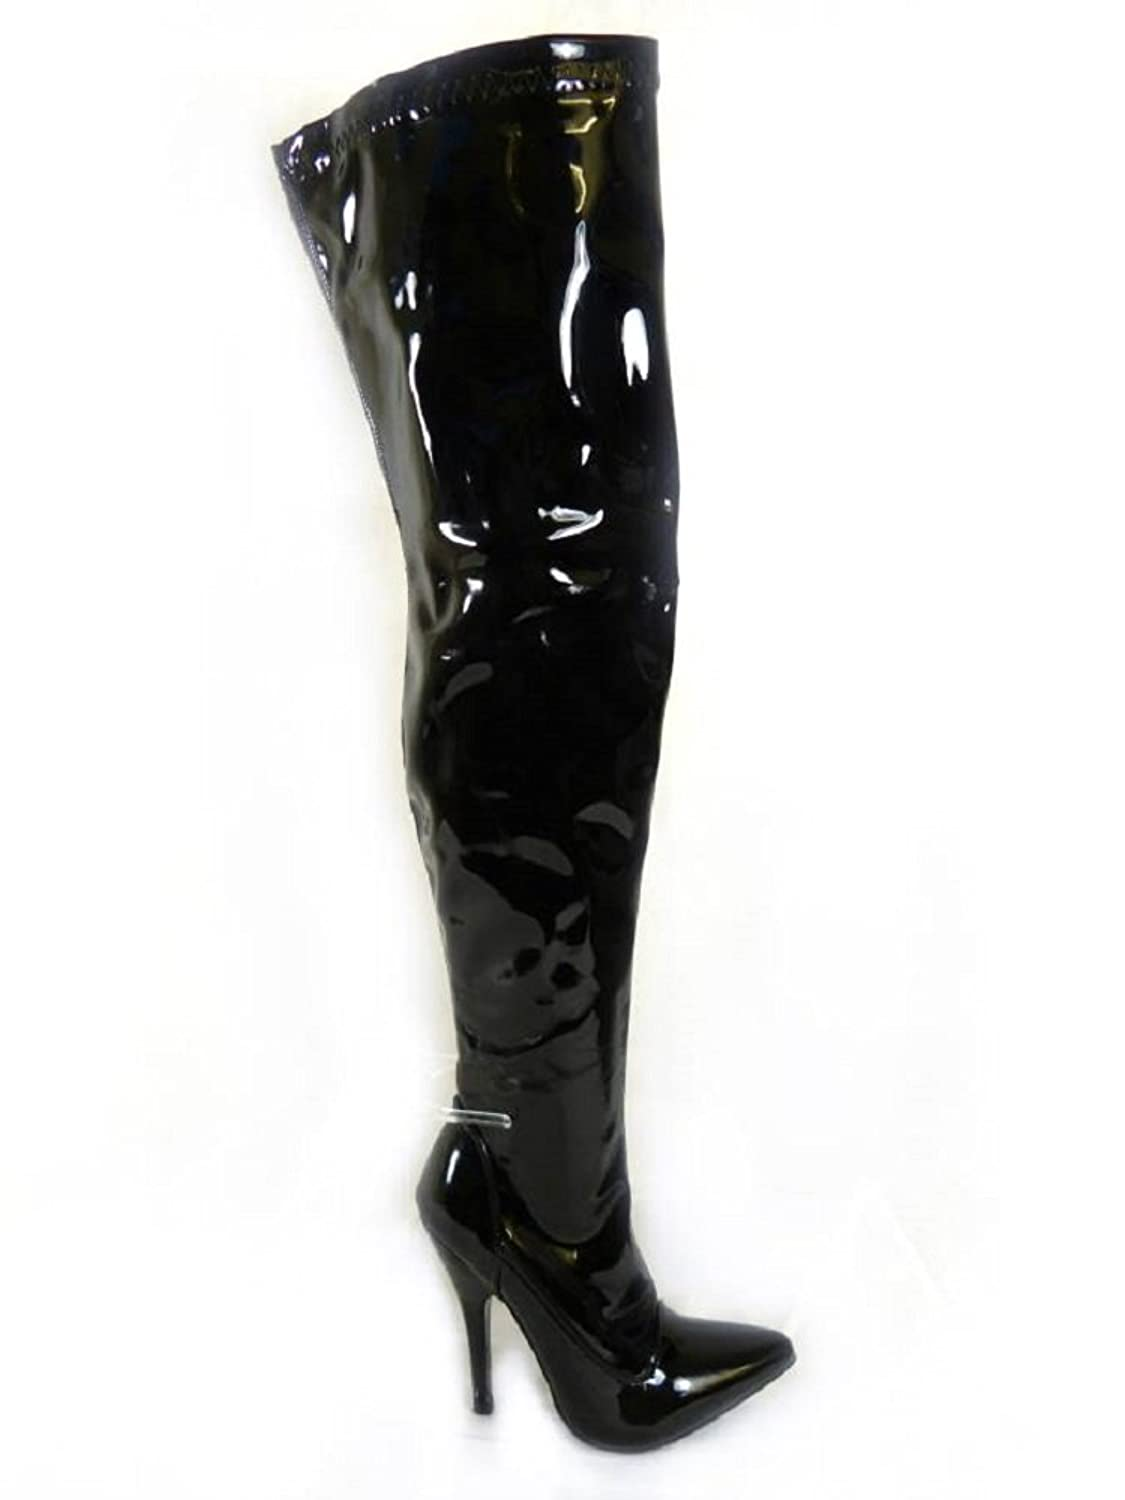 Mens Thigh High PVC High Heel Boots size 9-13 UK (13): Amazon.co ...